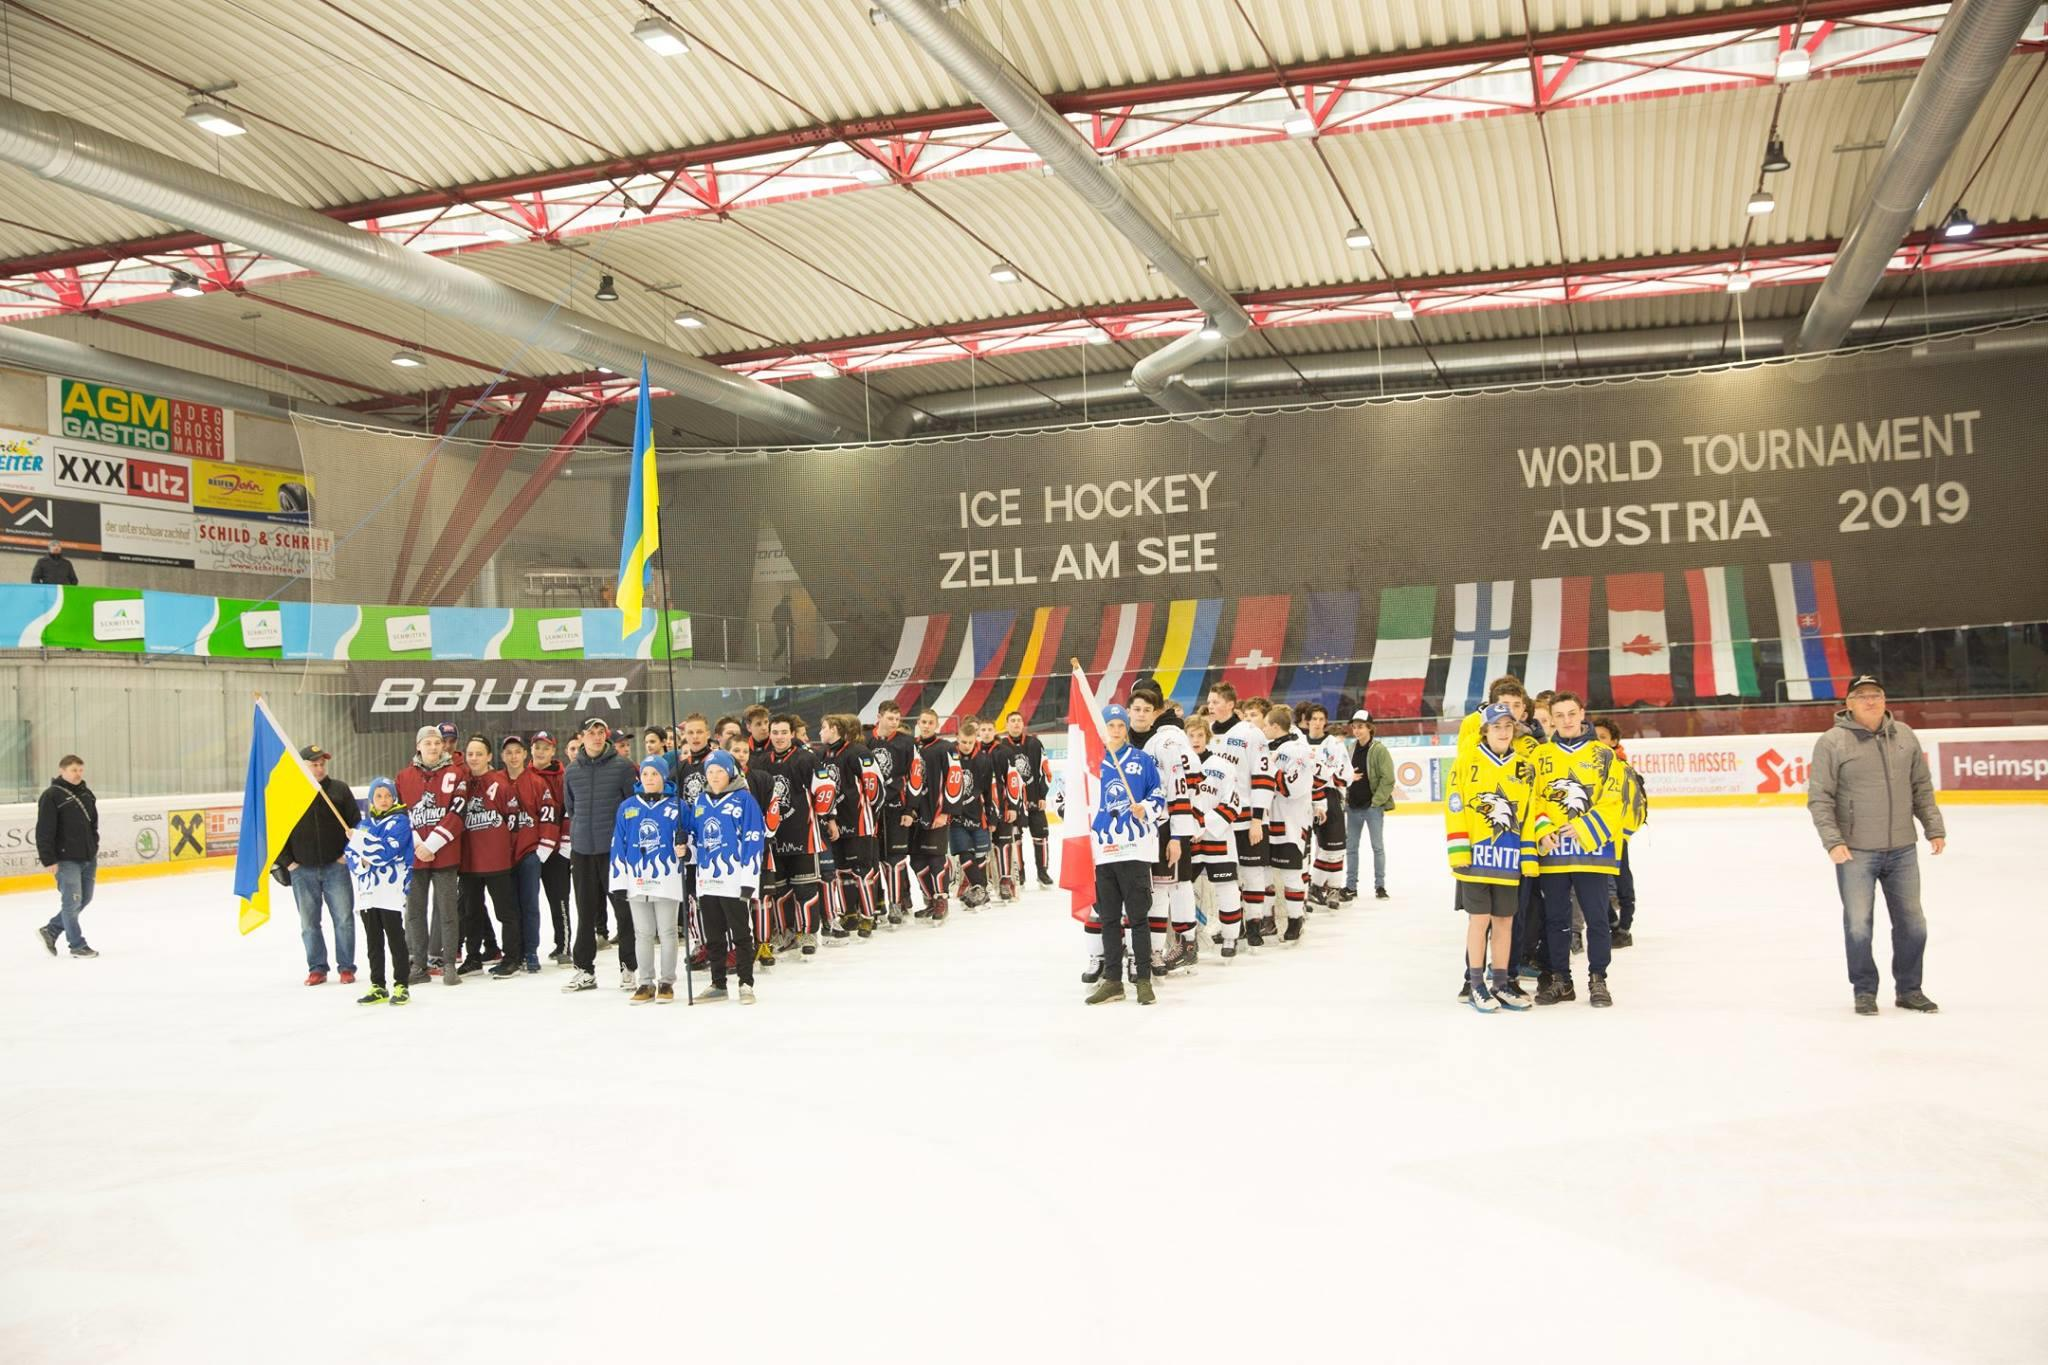 Eishockey World Tournament 2020 - 18.04.2020